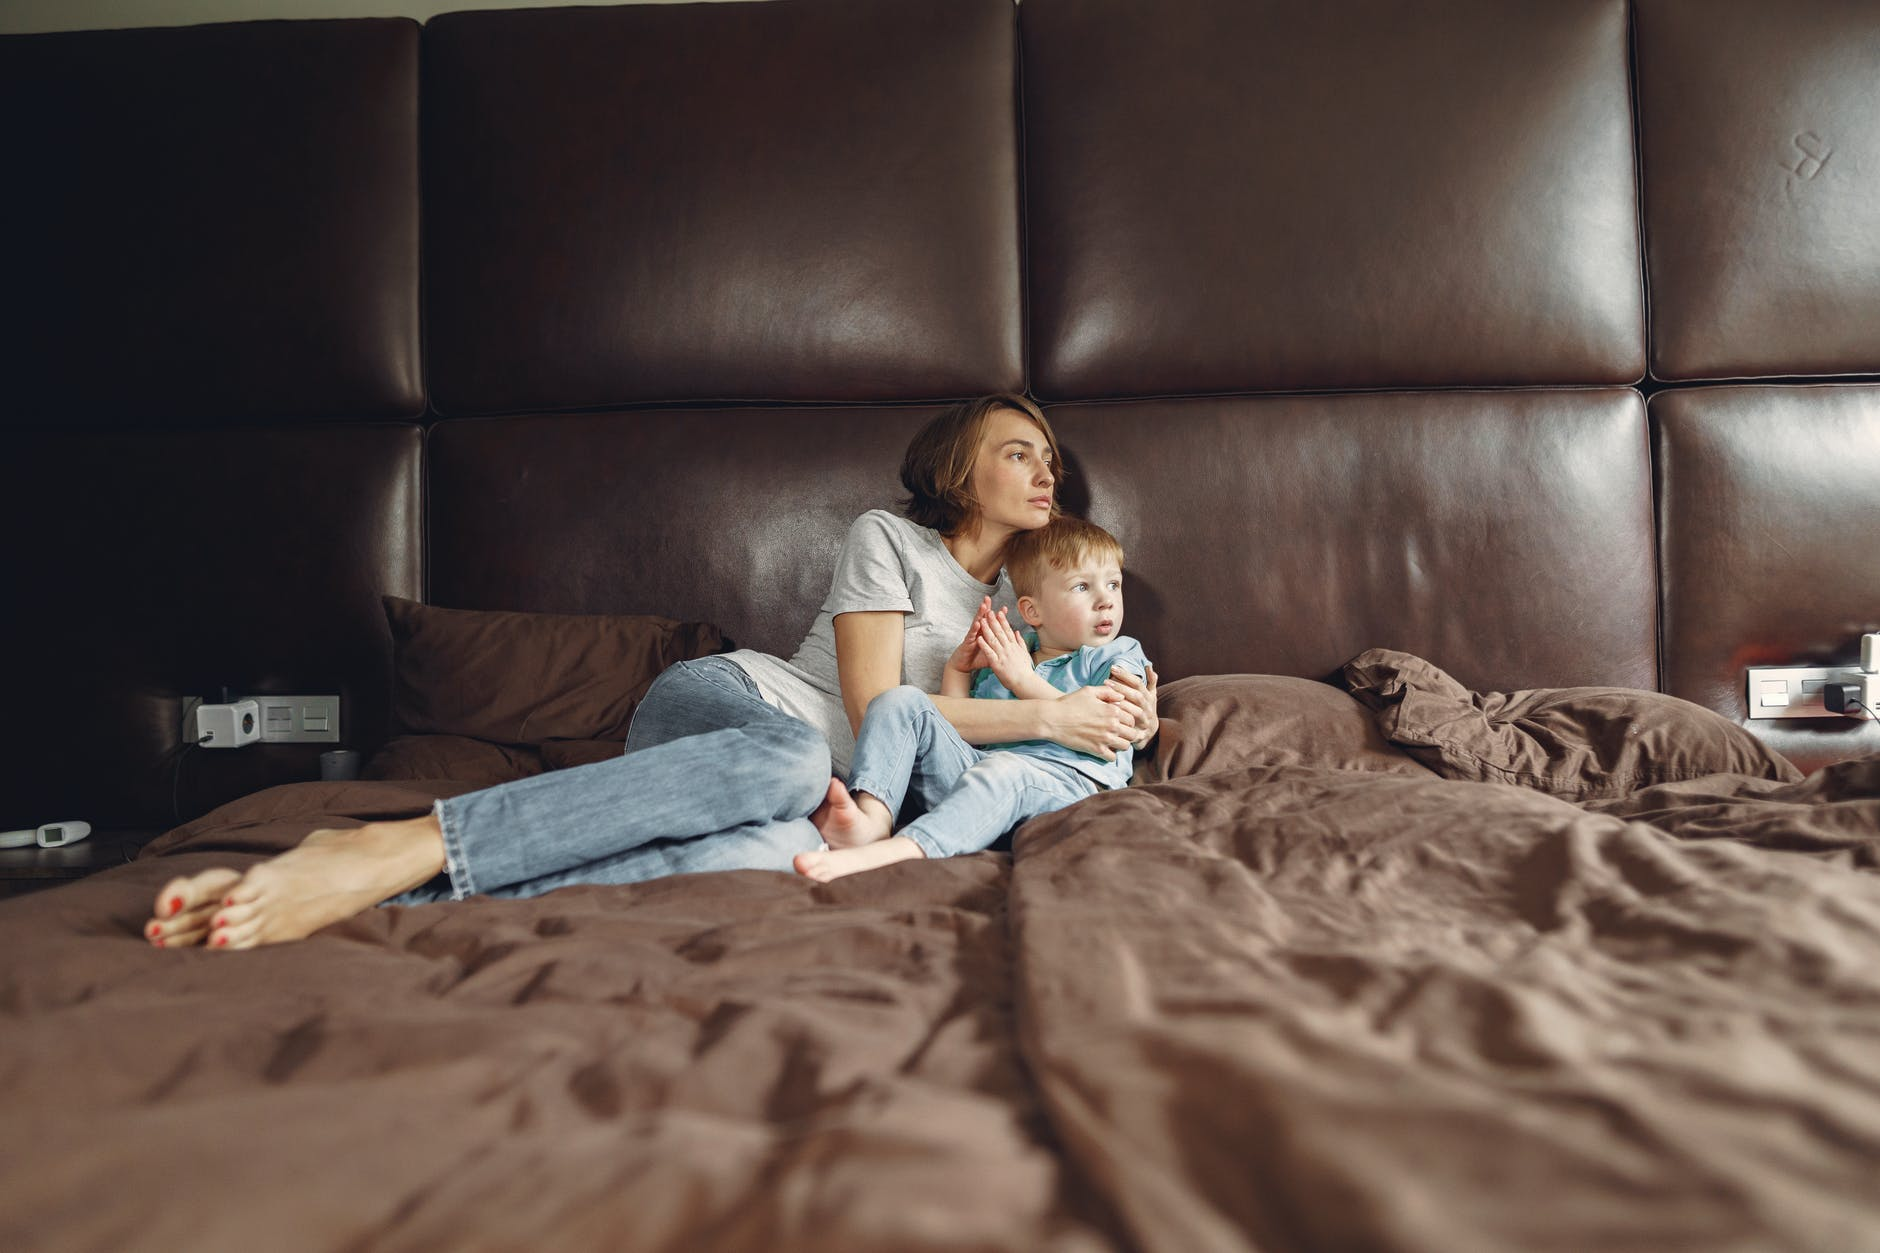 I was reunited with my son after she told me to come and get him   Source: Pexels